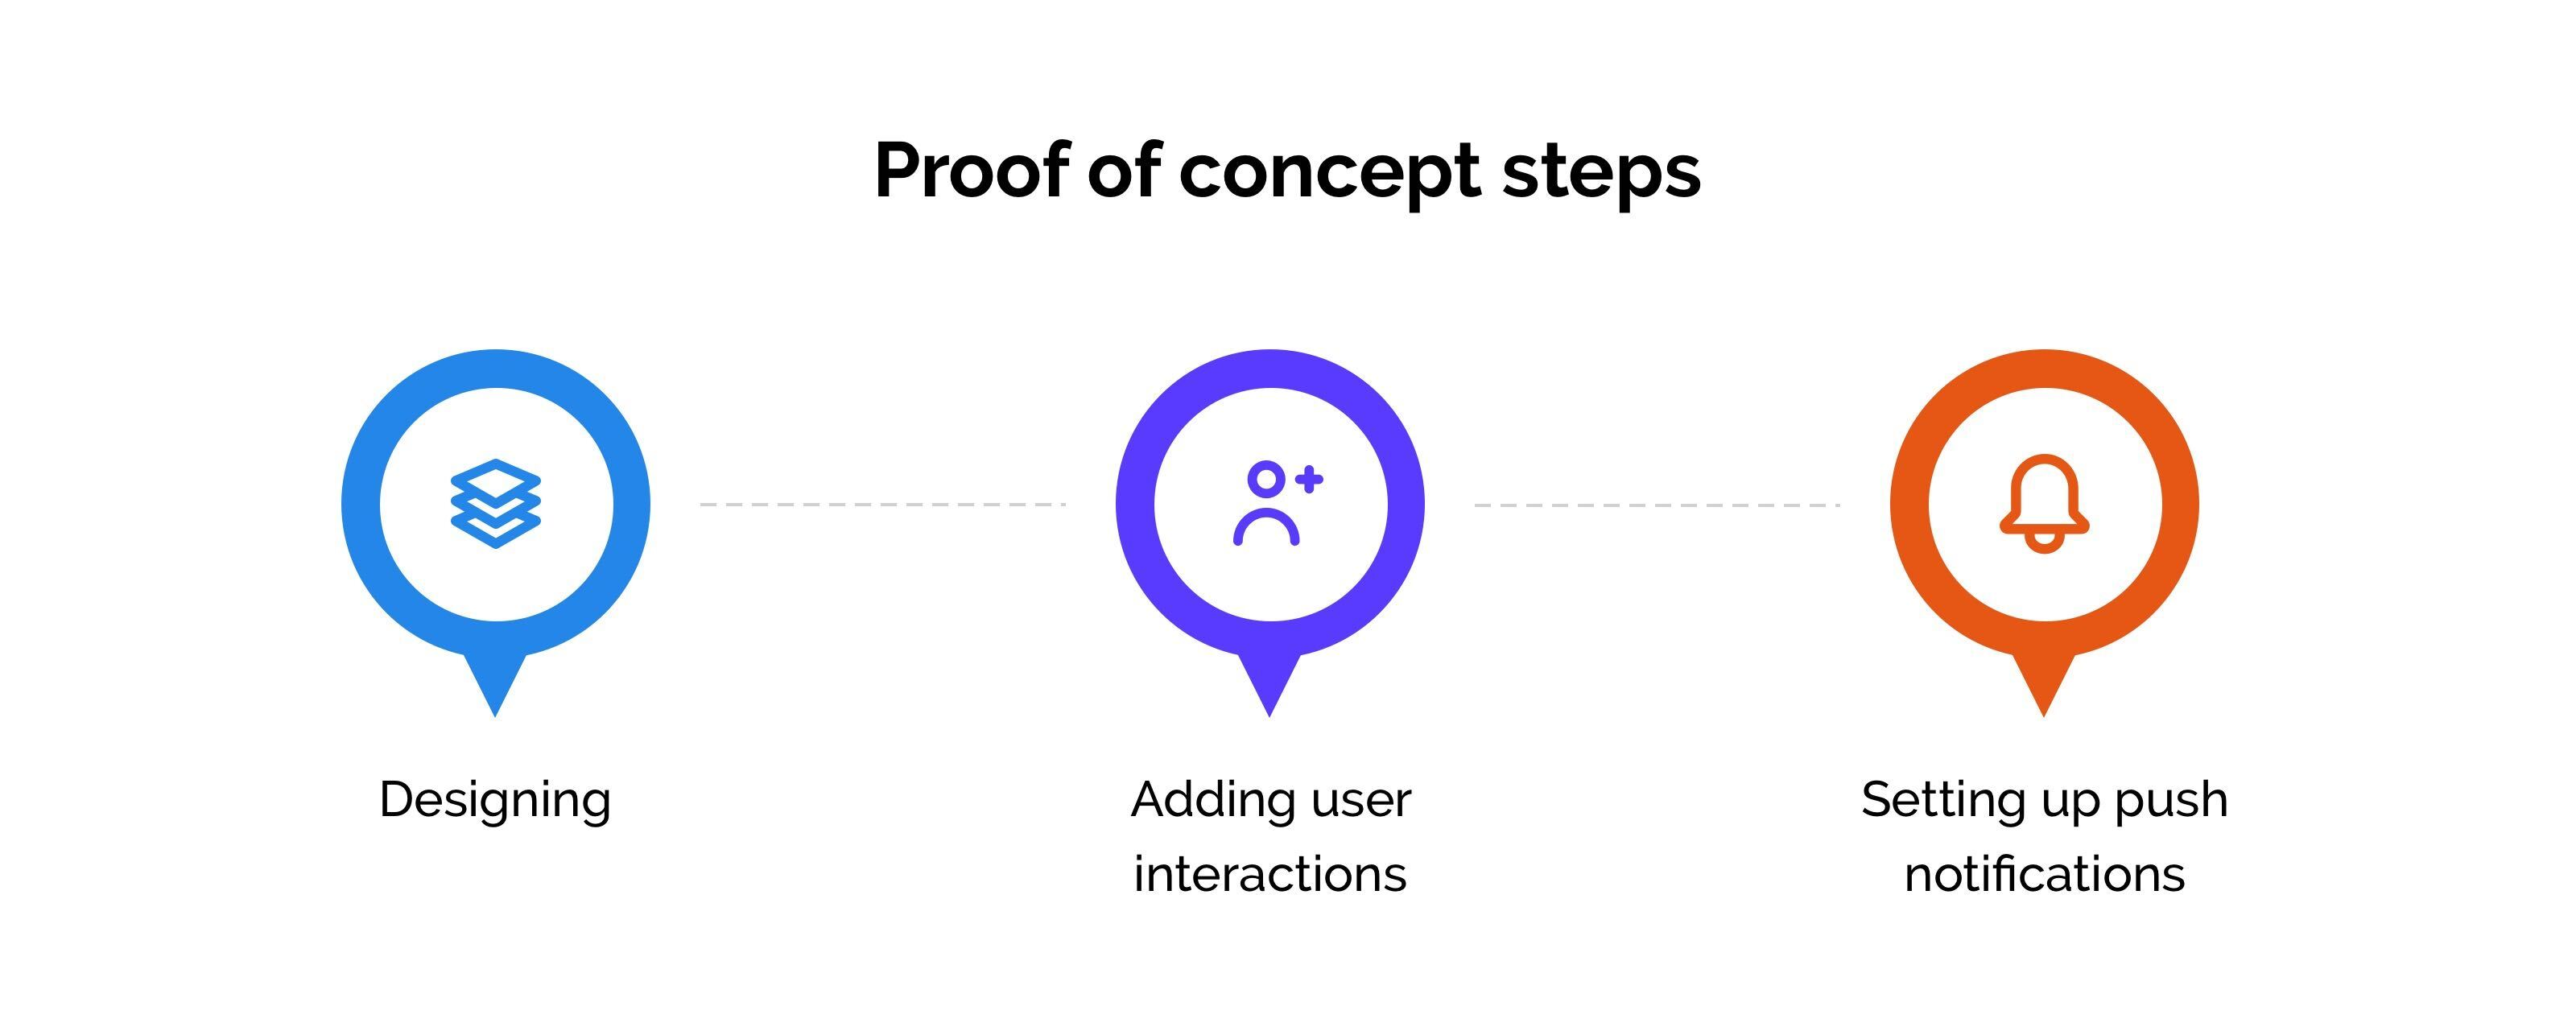 Proof of concept steps